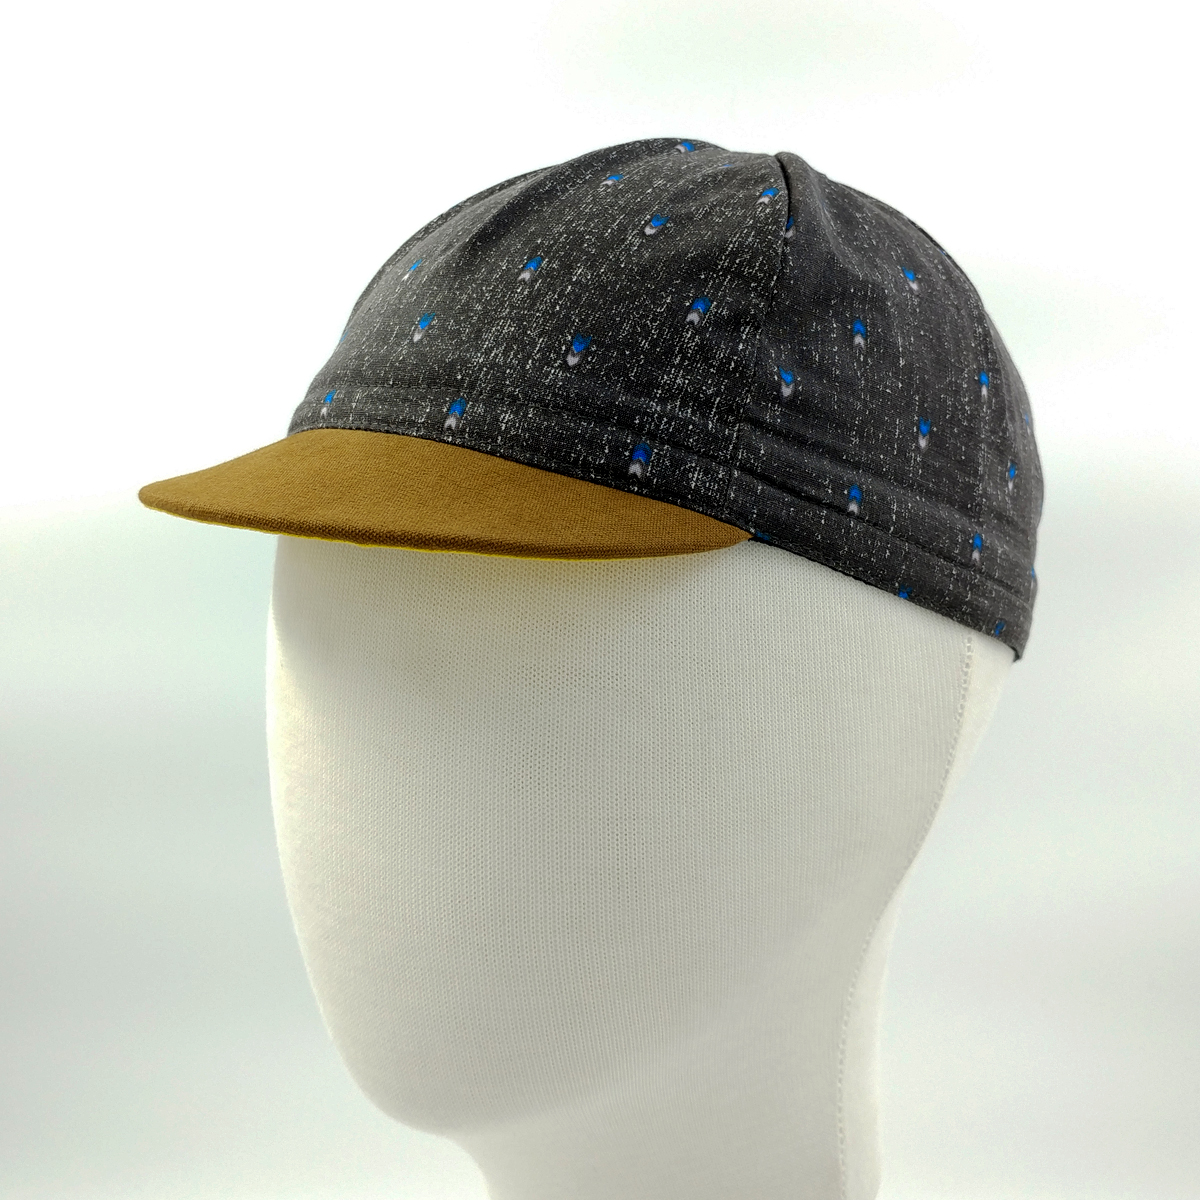 cycling cap - greyclue1